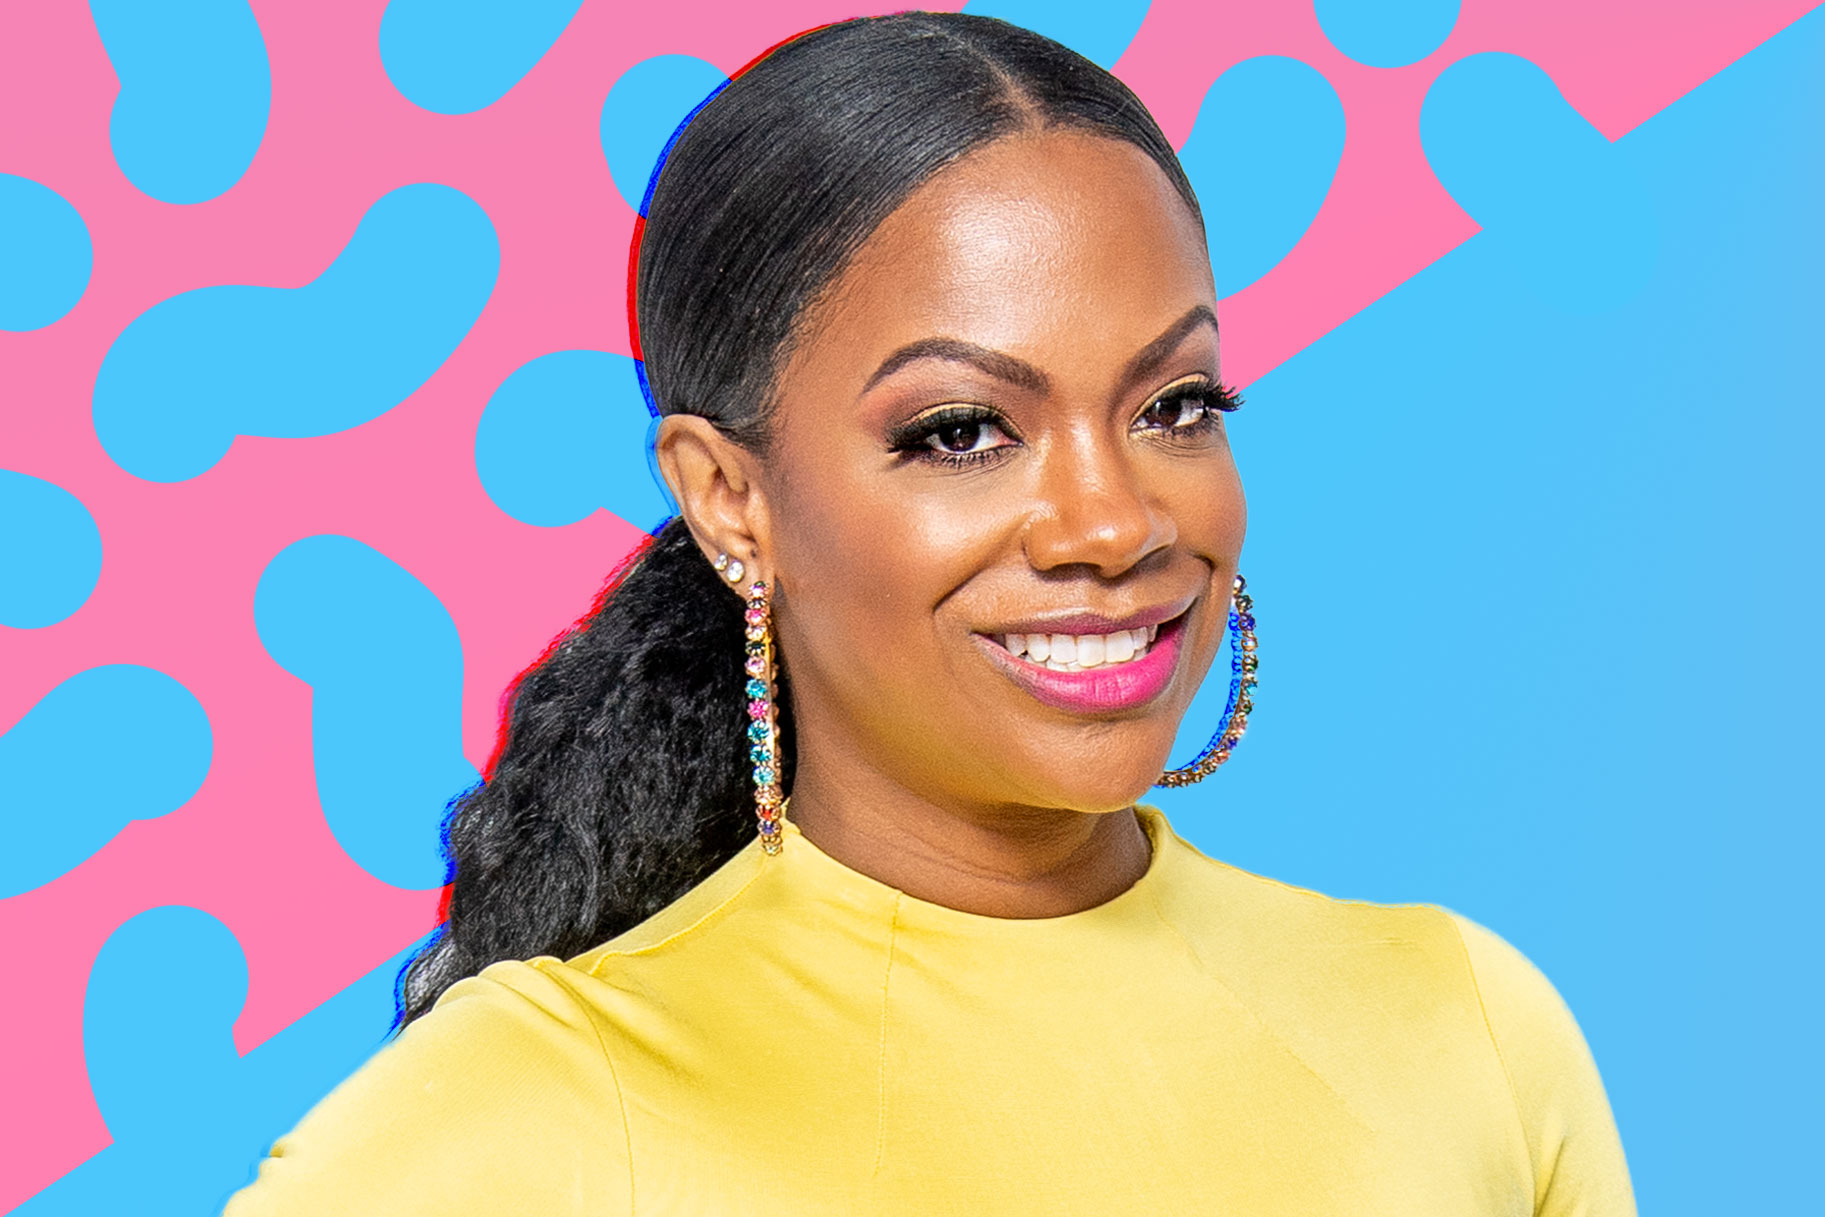 Kandi Burruss Stuns In Pink Bathing Suit And Pigtails ...